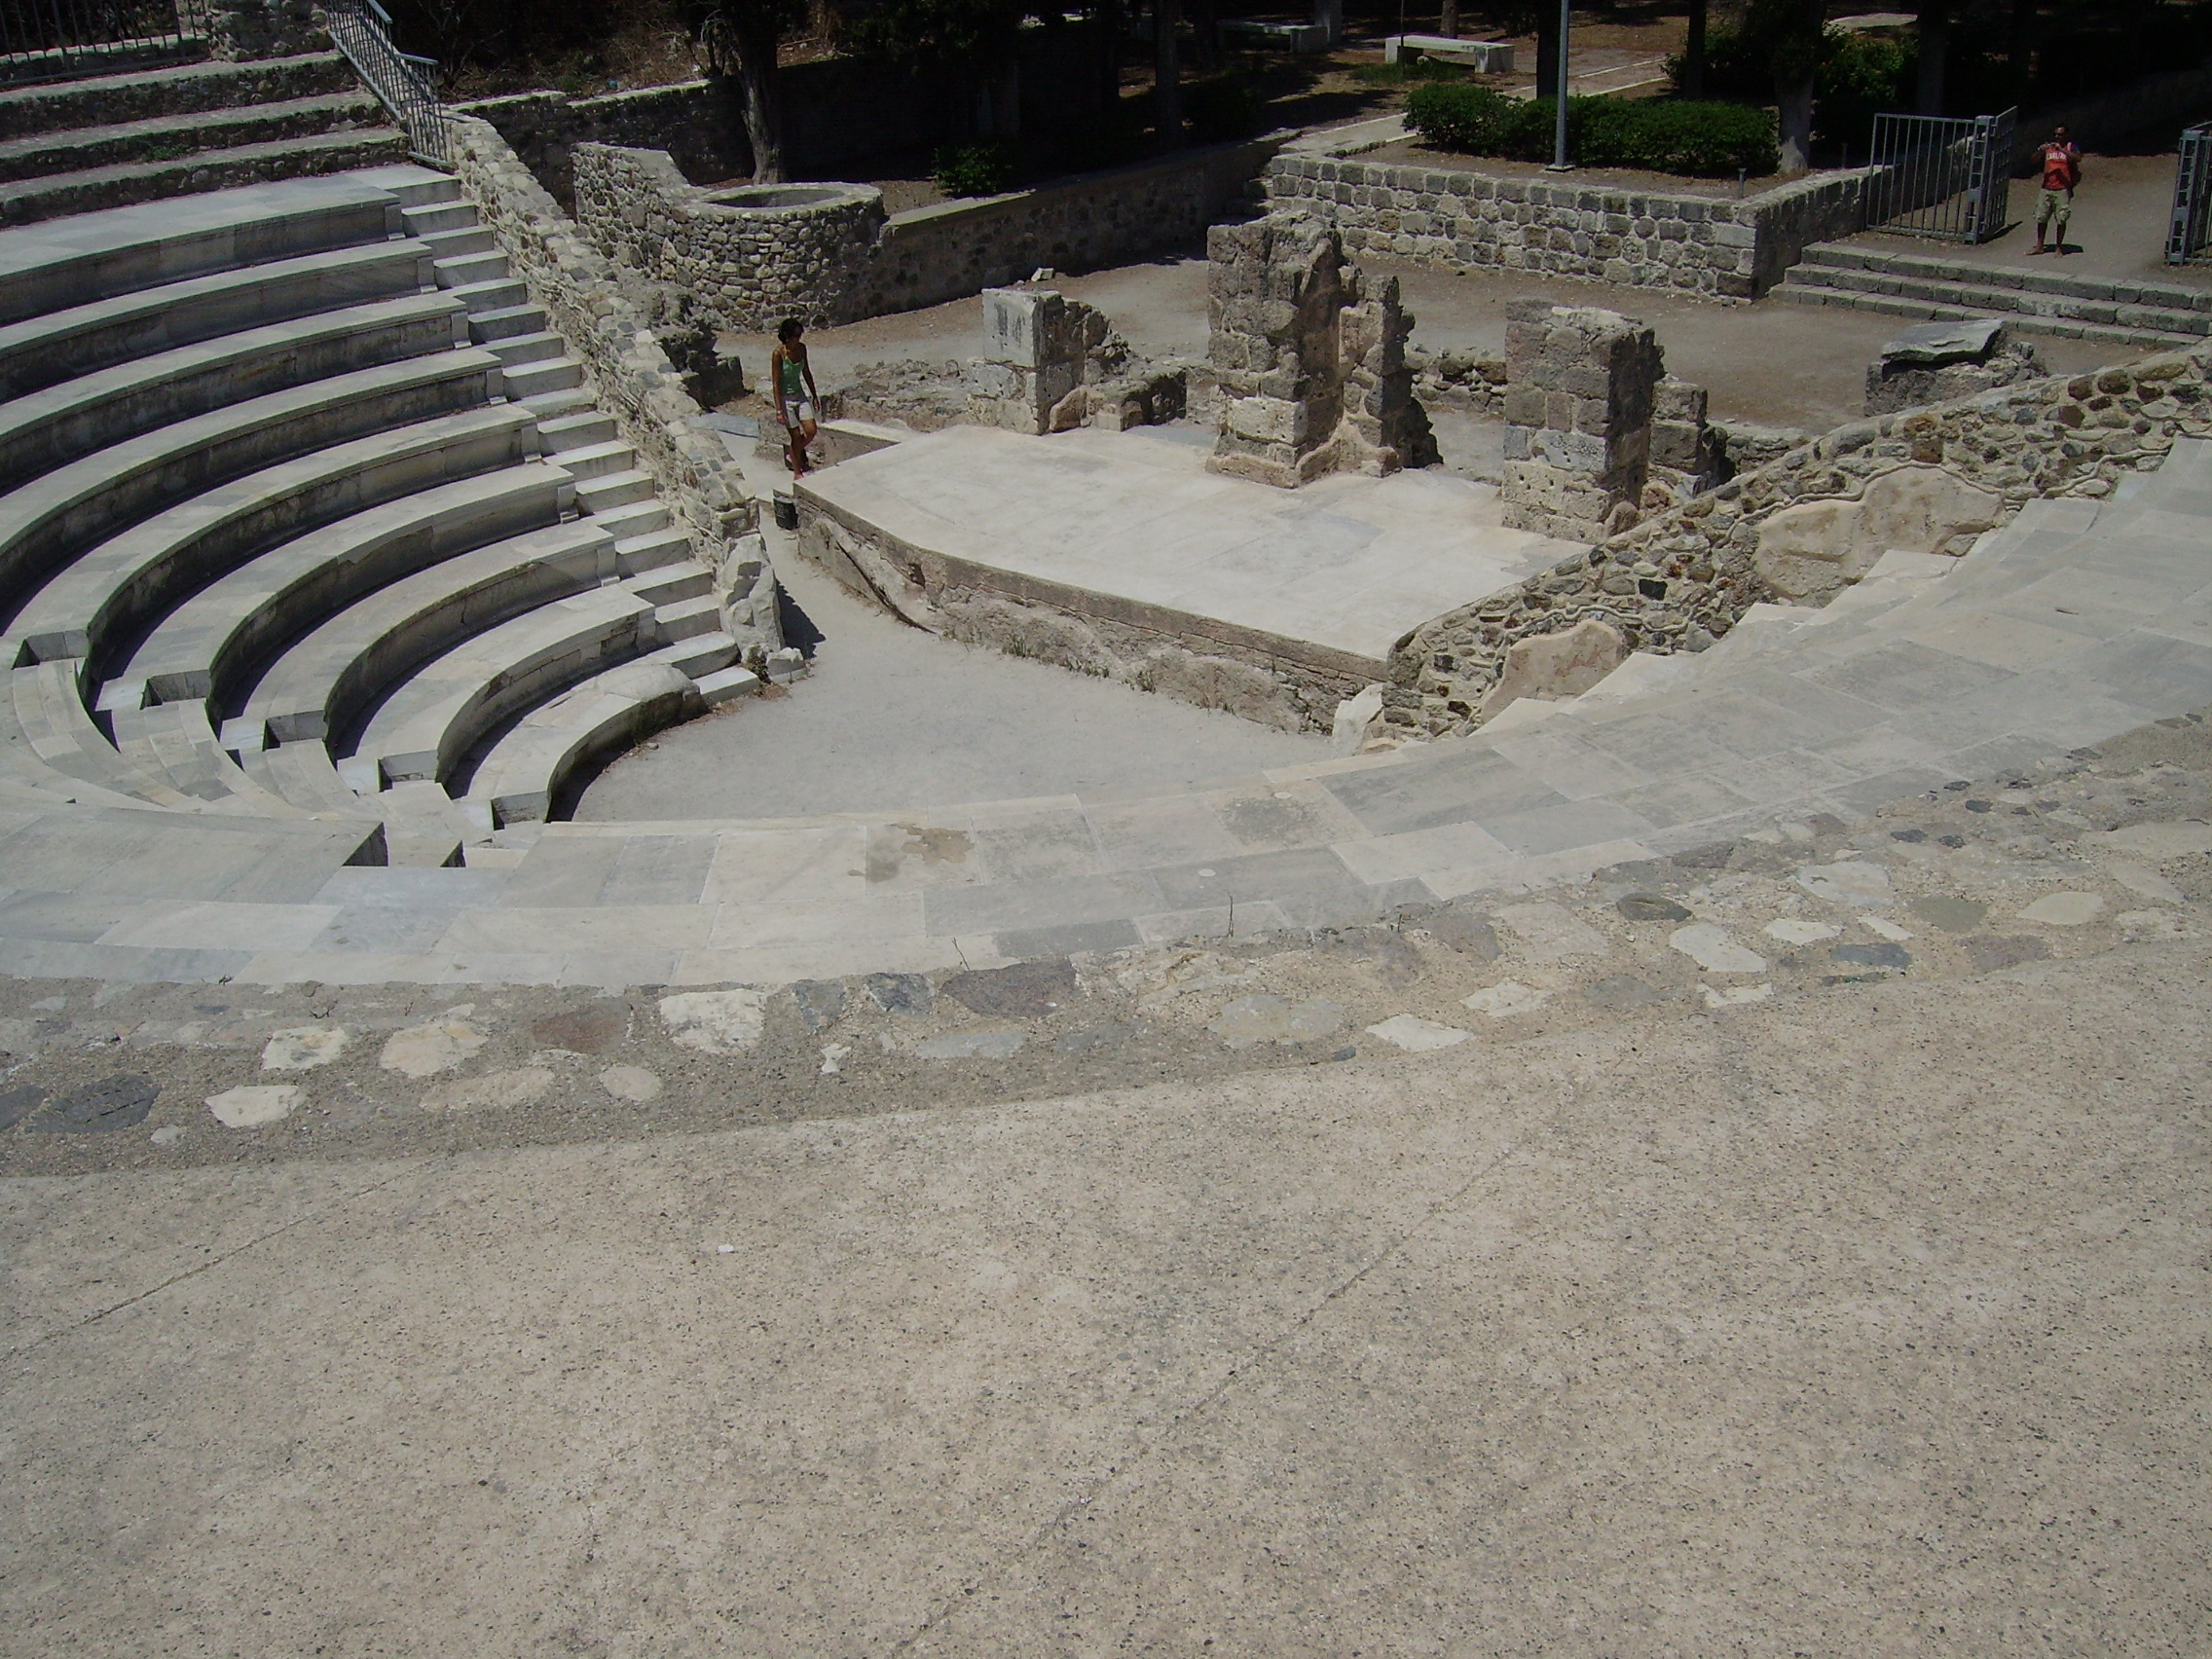 http://upload.wikimedia.org/wikipedia/commons/3/3d/Kos_odeon_03.JPG